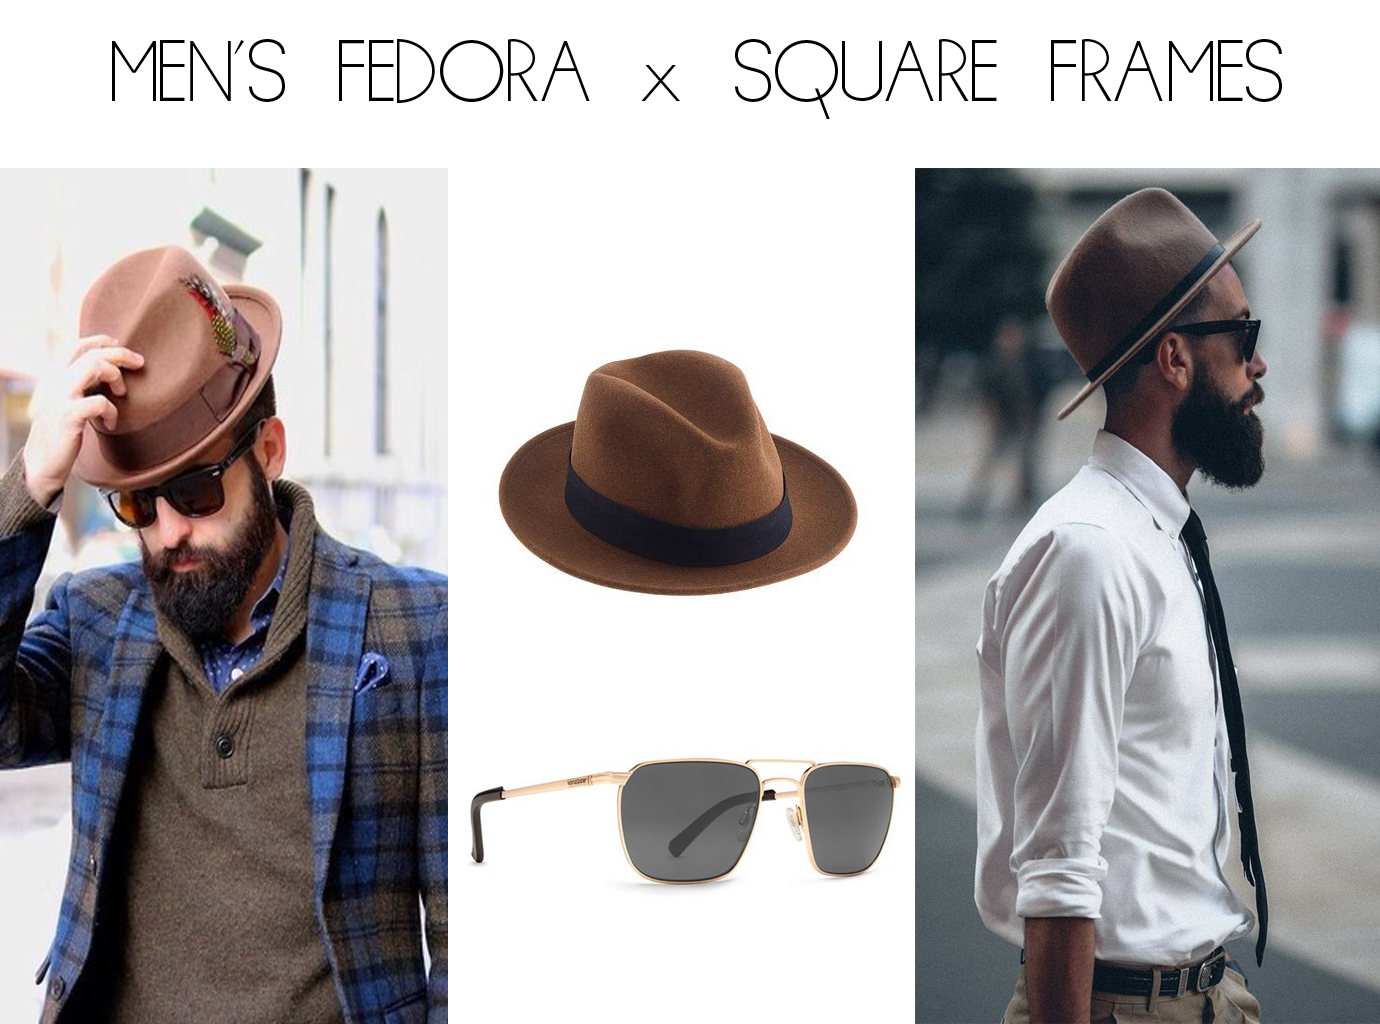 The Insider Outubro 2015 Tendencies Caps White Way Of Life Cap Putih Classic Fedora Hat This Is Like Time Everybody Knows Its Existence And Eternal When It Comes To Style So For All Those 21th Century Dandys